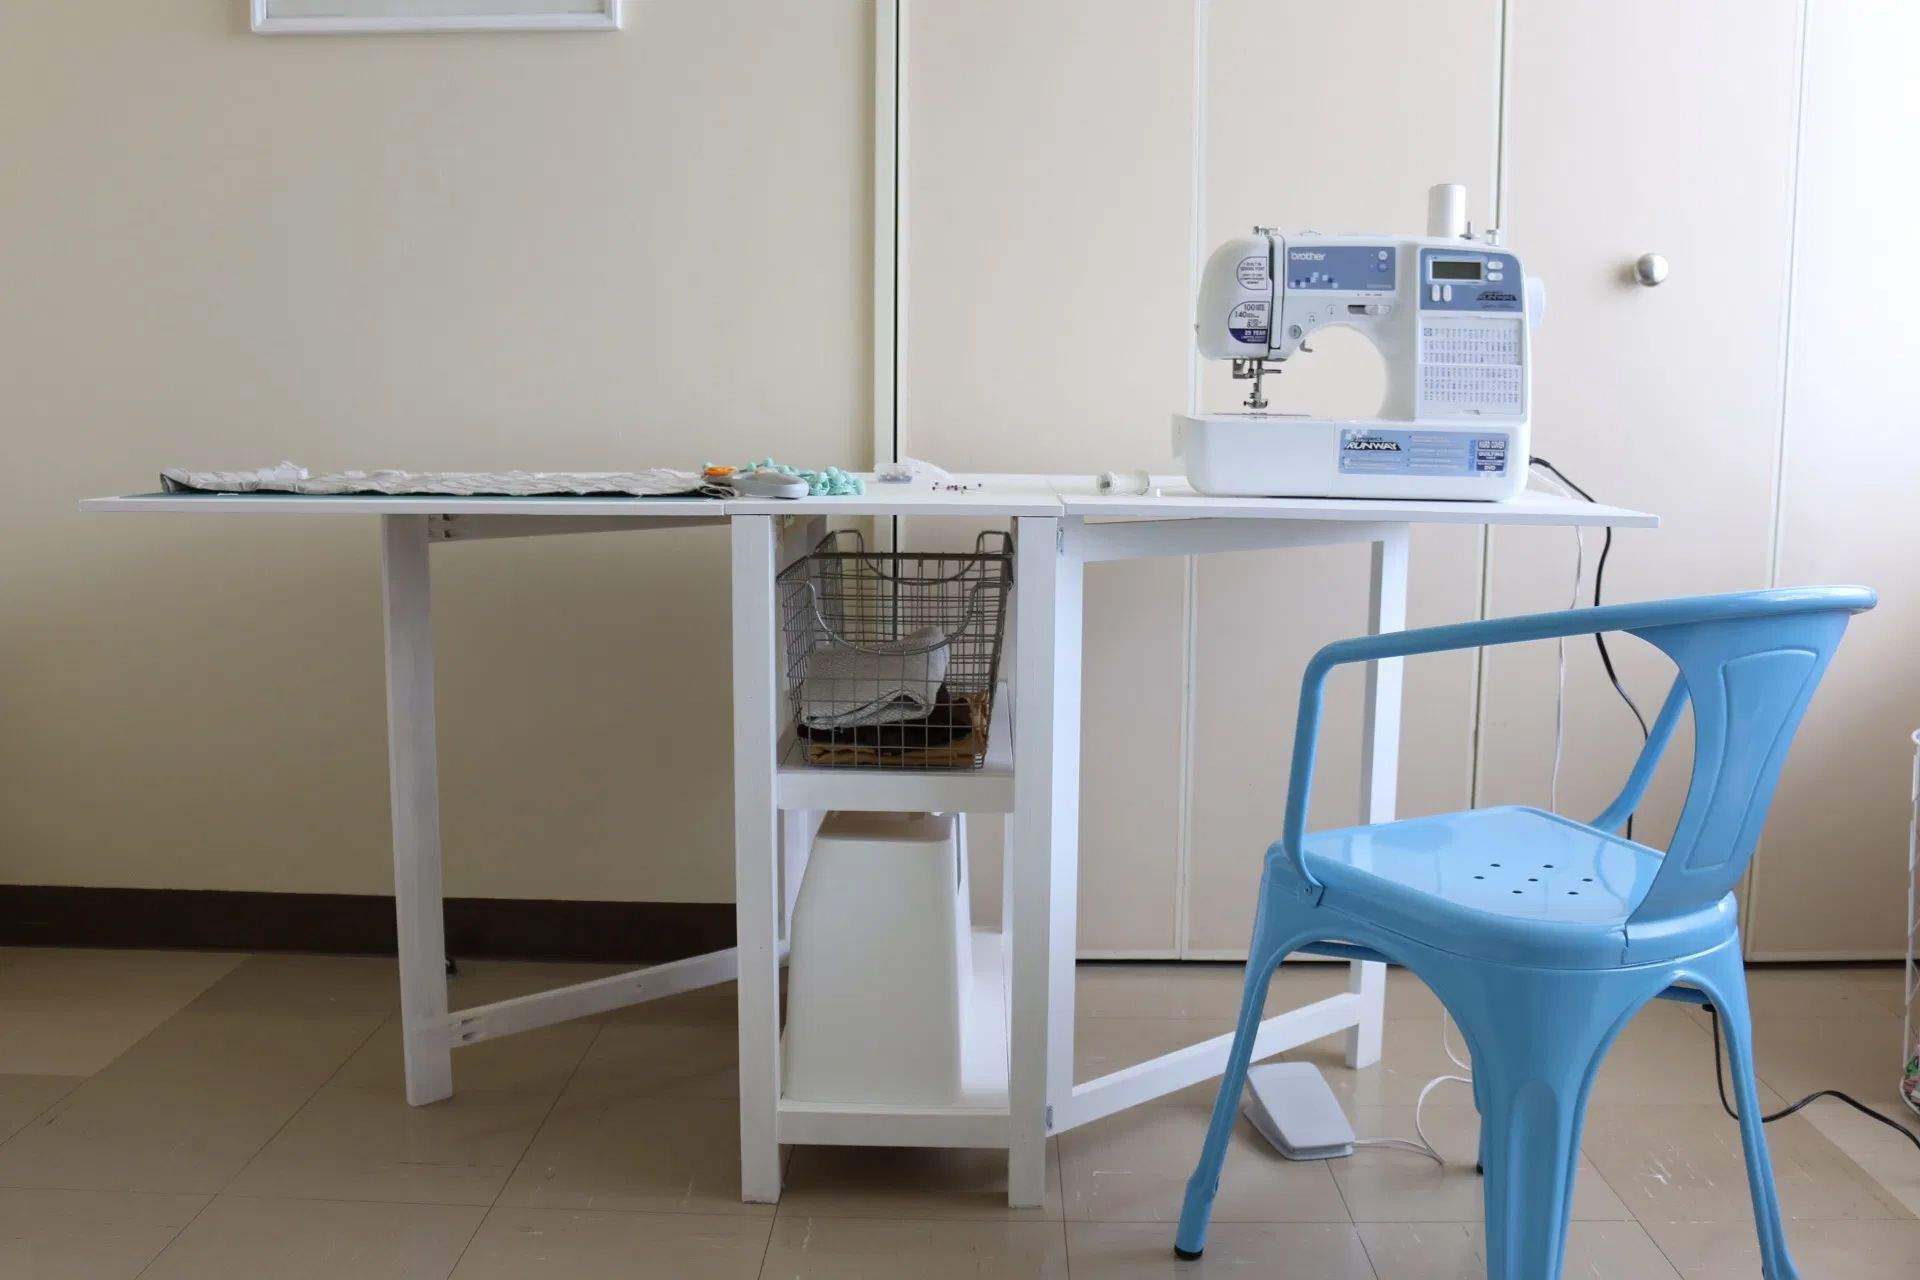 A foldable craft table with a sewing machine on it